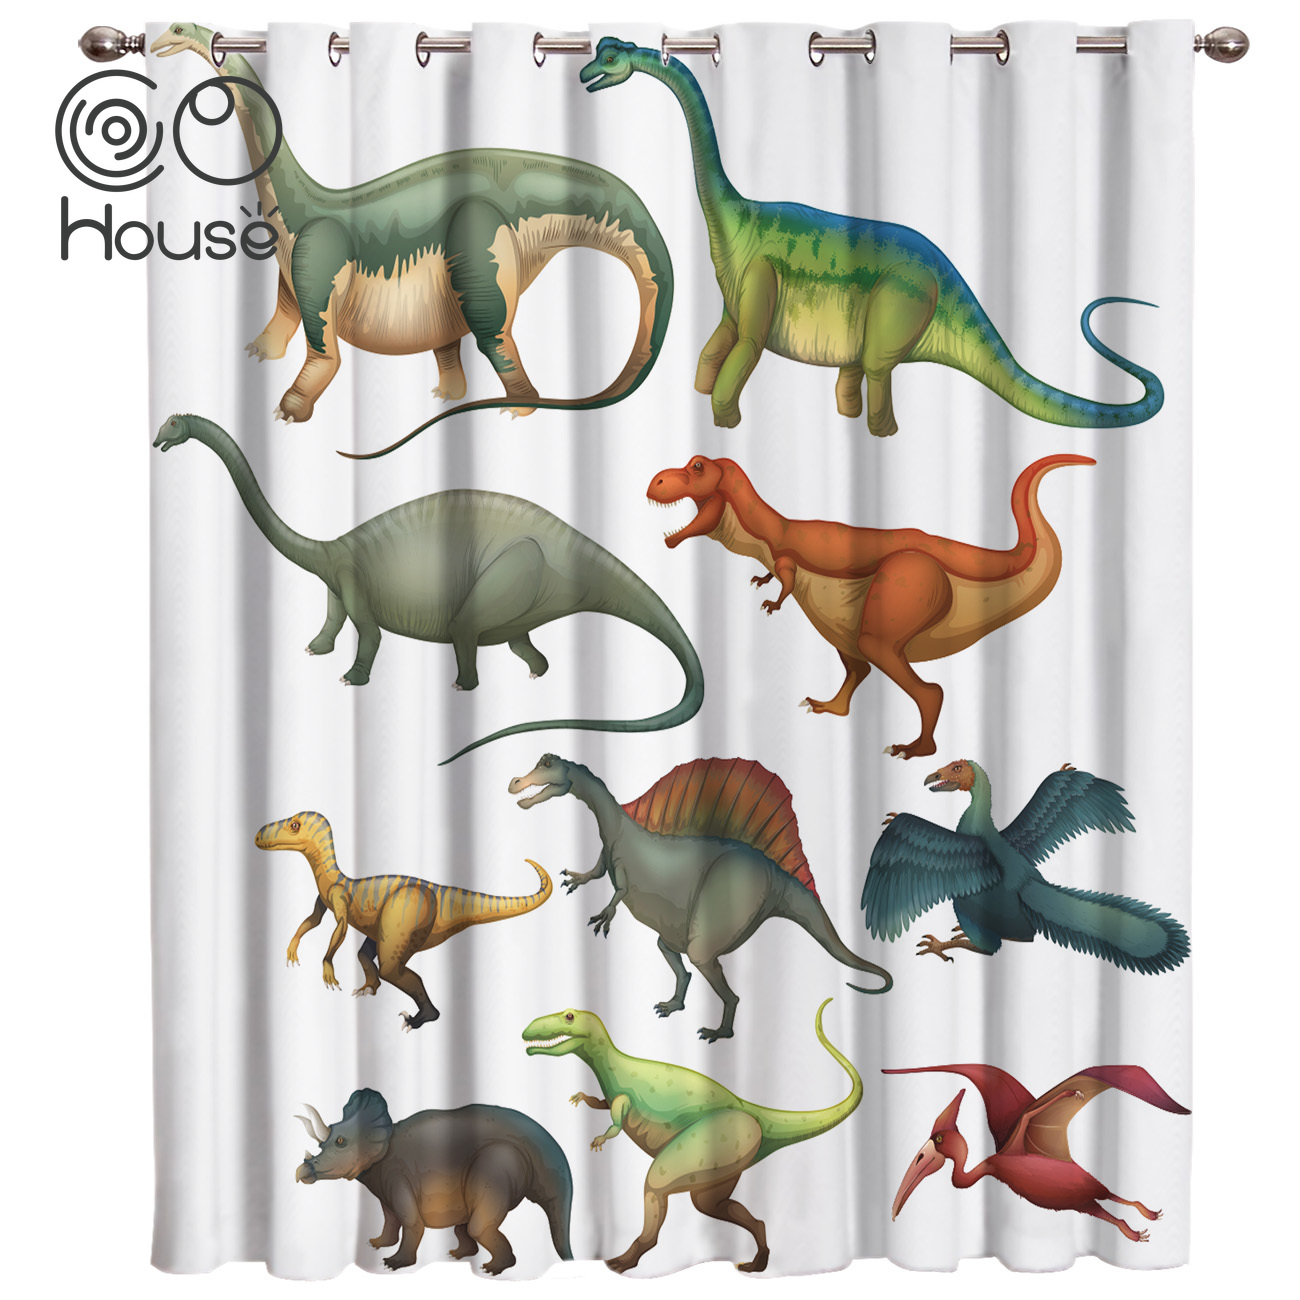 COCOHouse Different Types Of Dinosaurs Room Curtains Large Window Living Room Bathroom Blackout Bedroom Drapes Fabric Kids